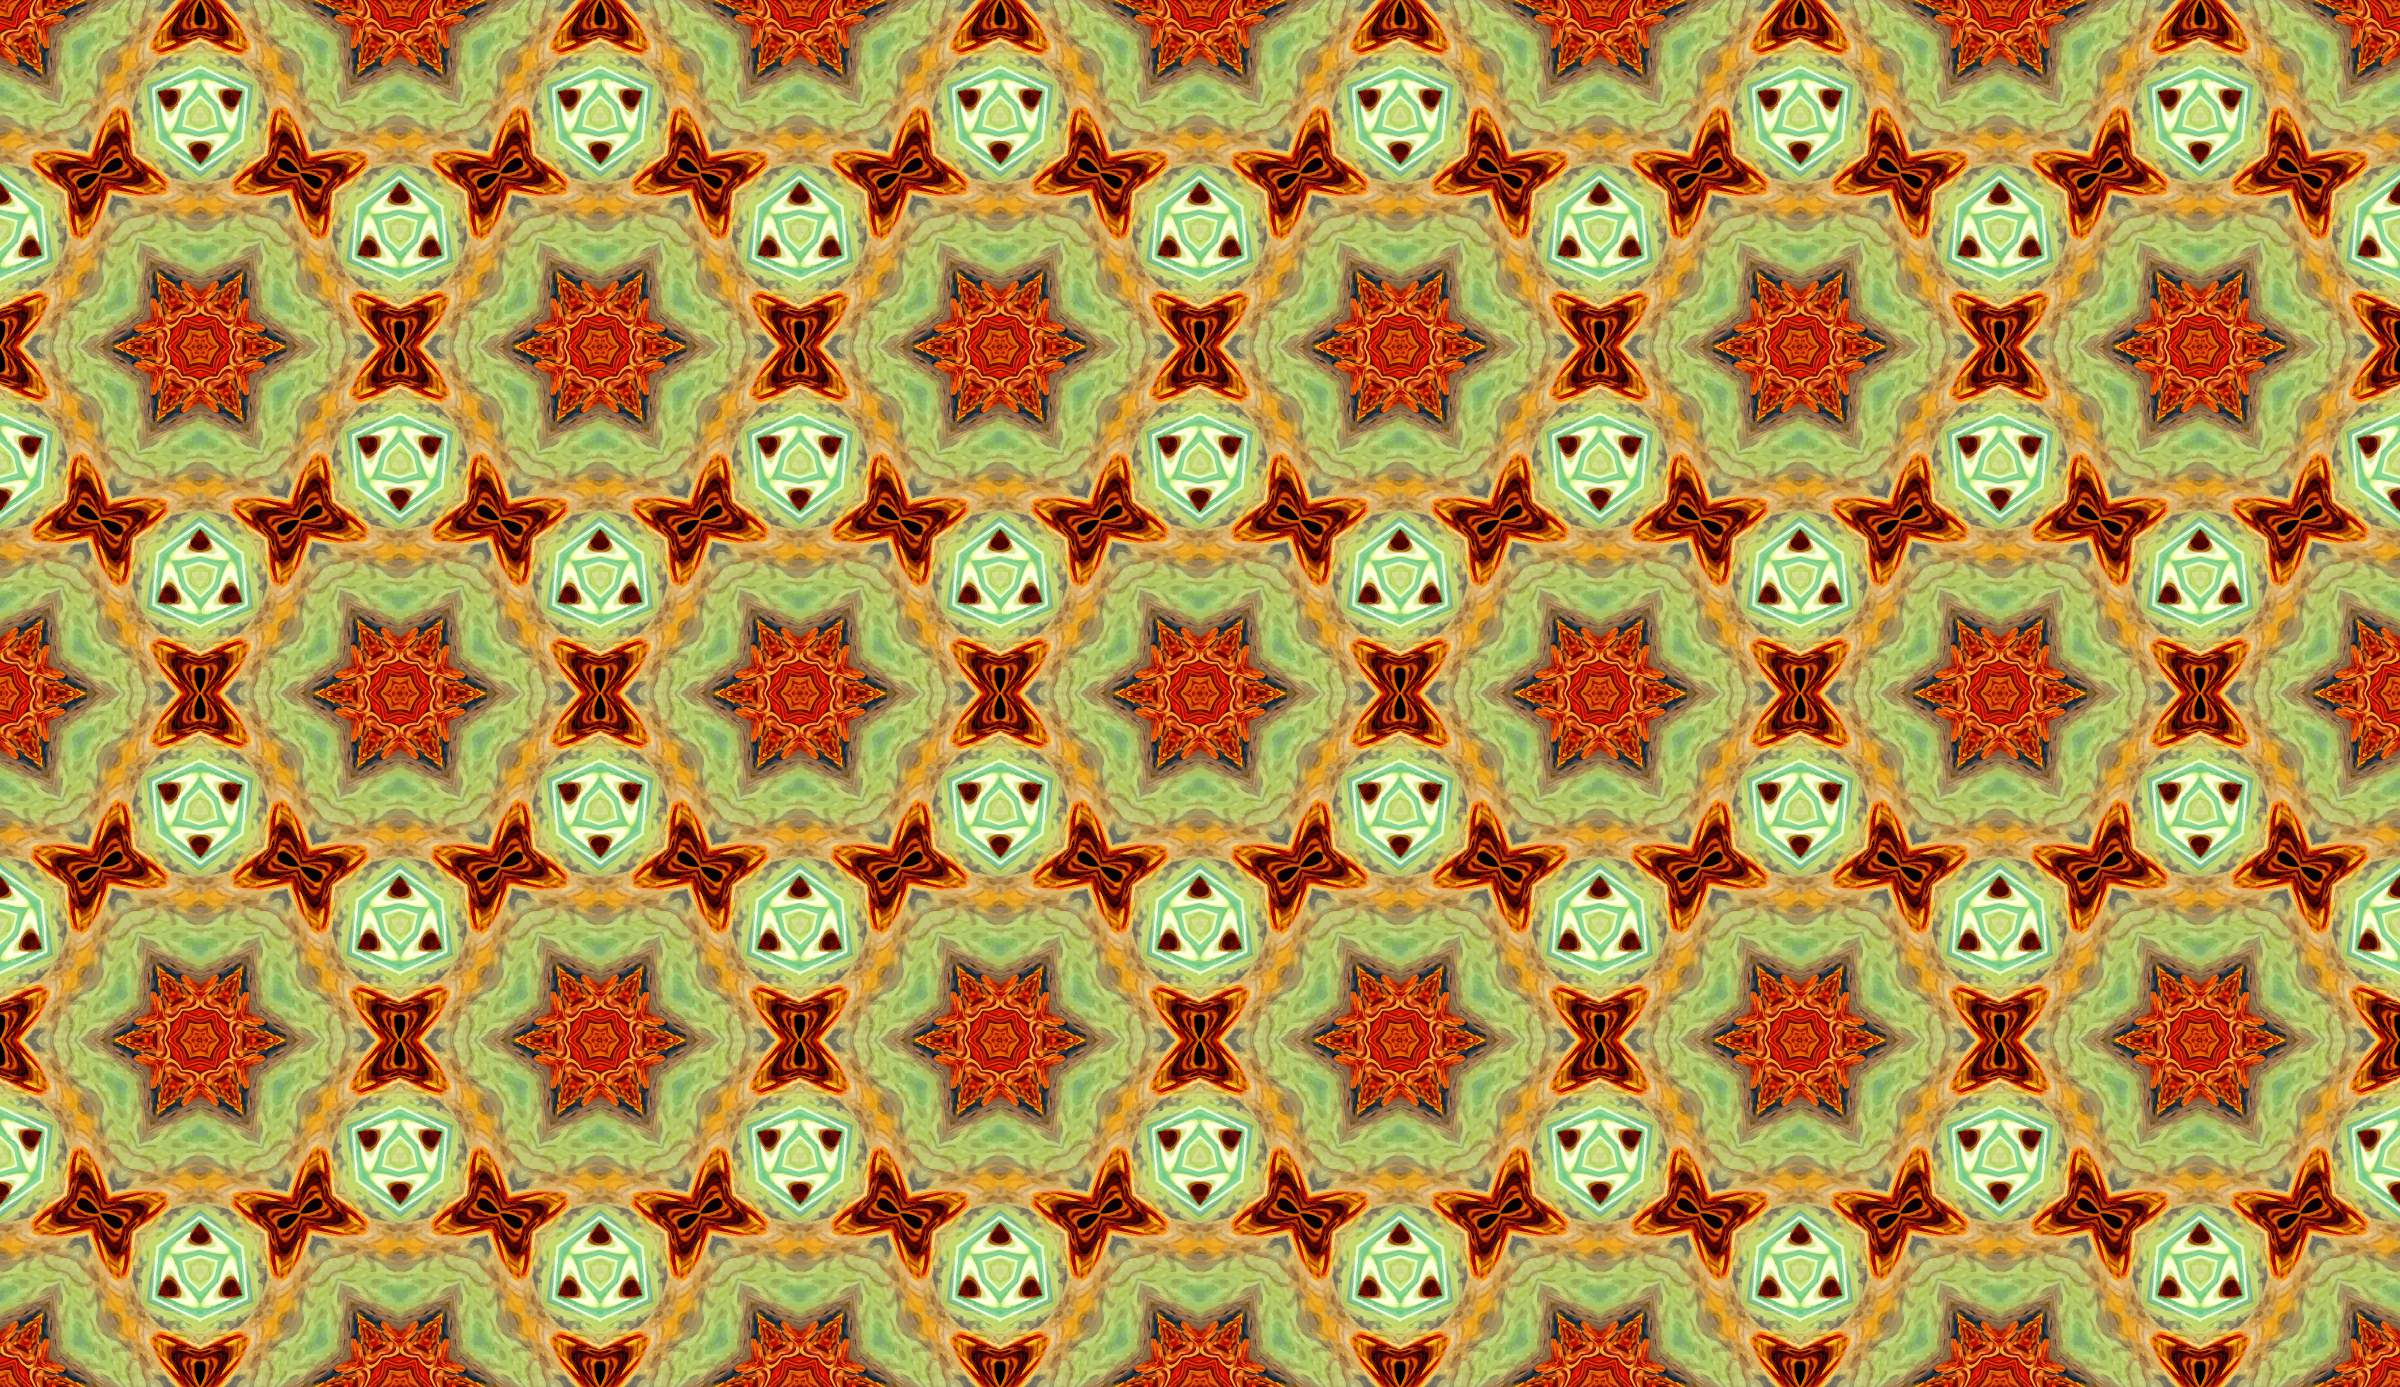 Background pattern 71 by Firkin